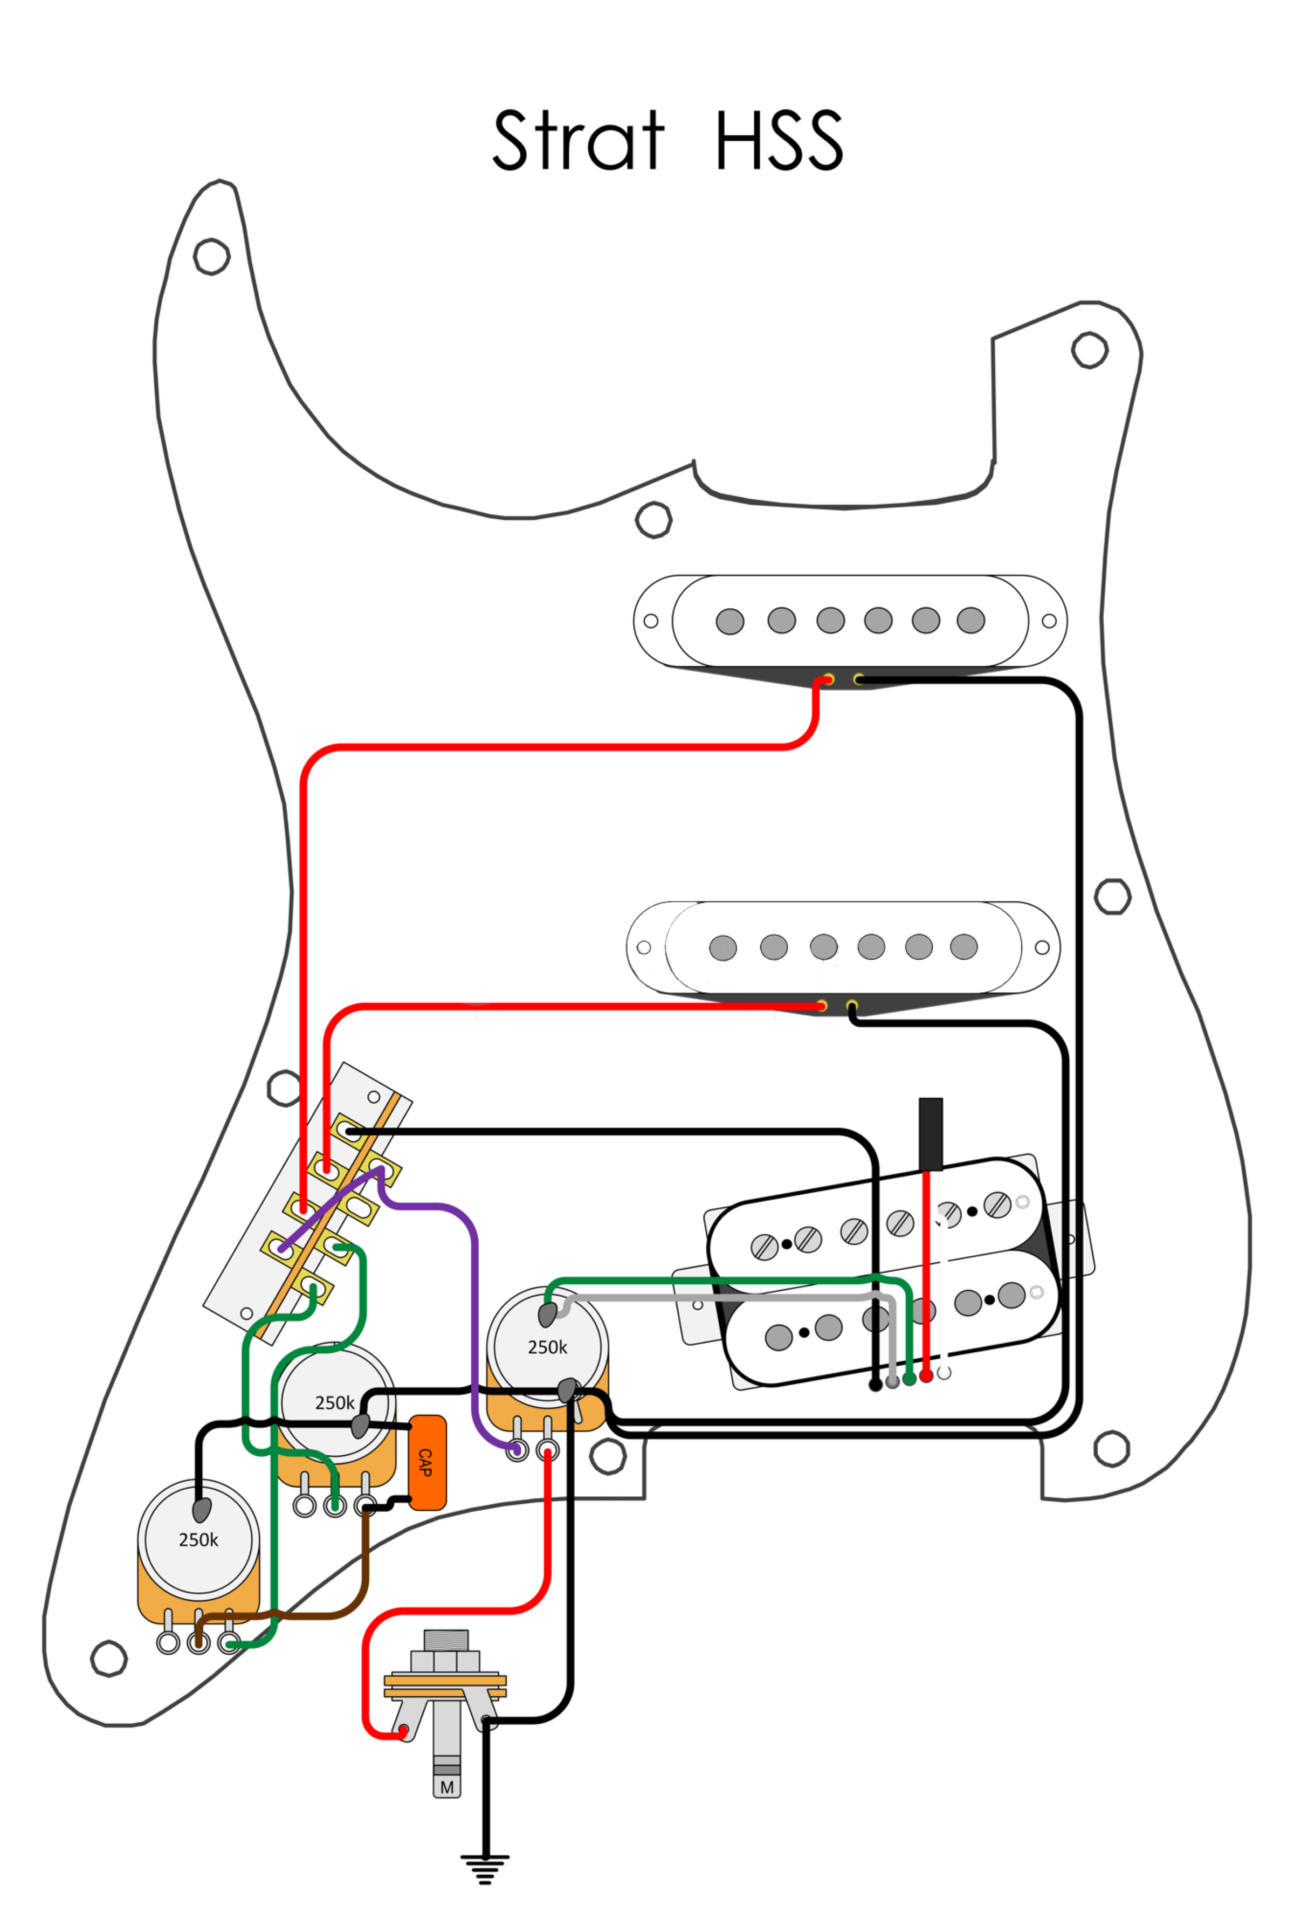 Wiring Diagrams - Blackwood Guitarworks | Guitar Wiring Diagrams Hss |  | Blackwood Guitarworks